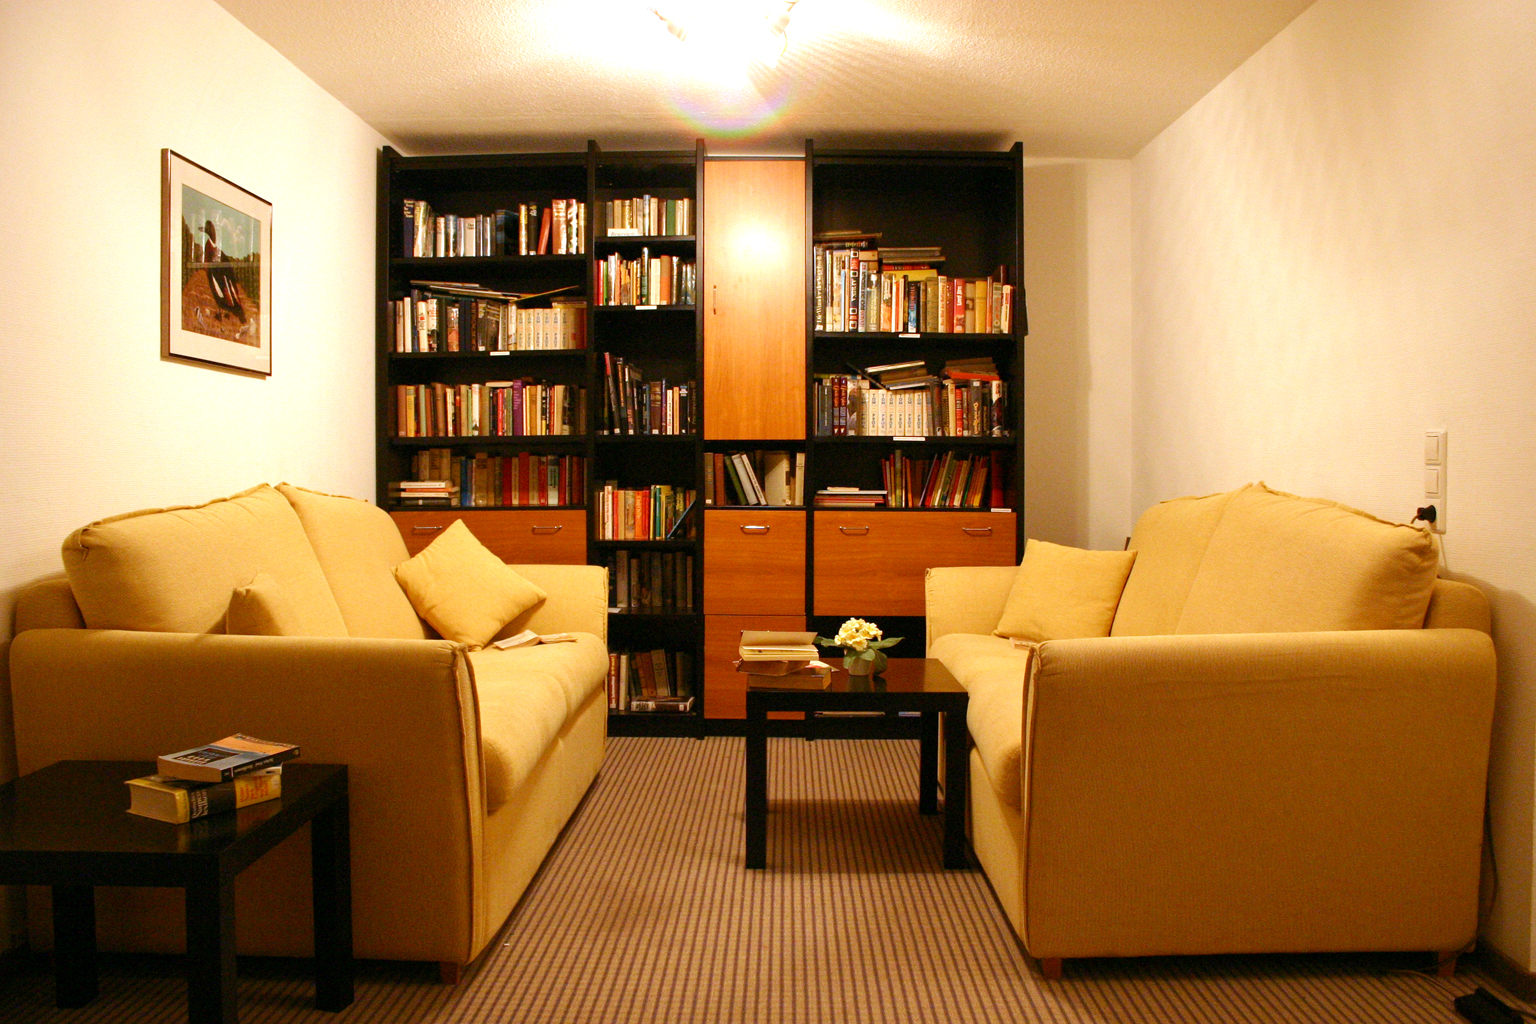 library-1544072